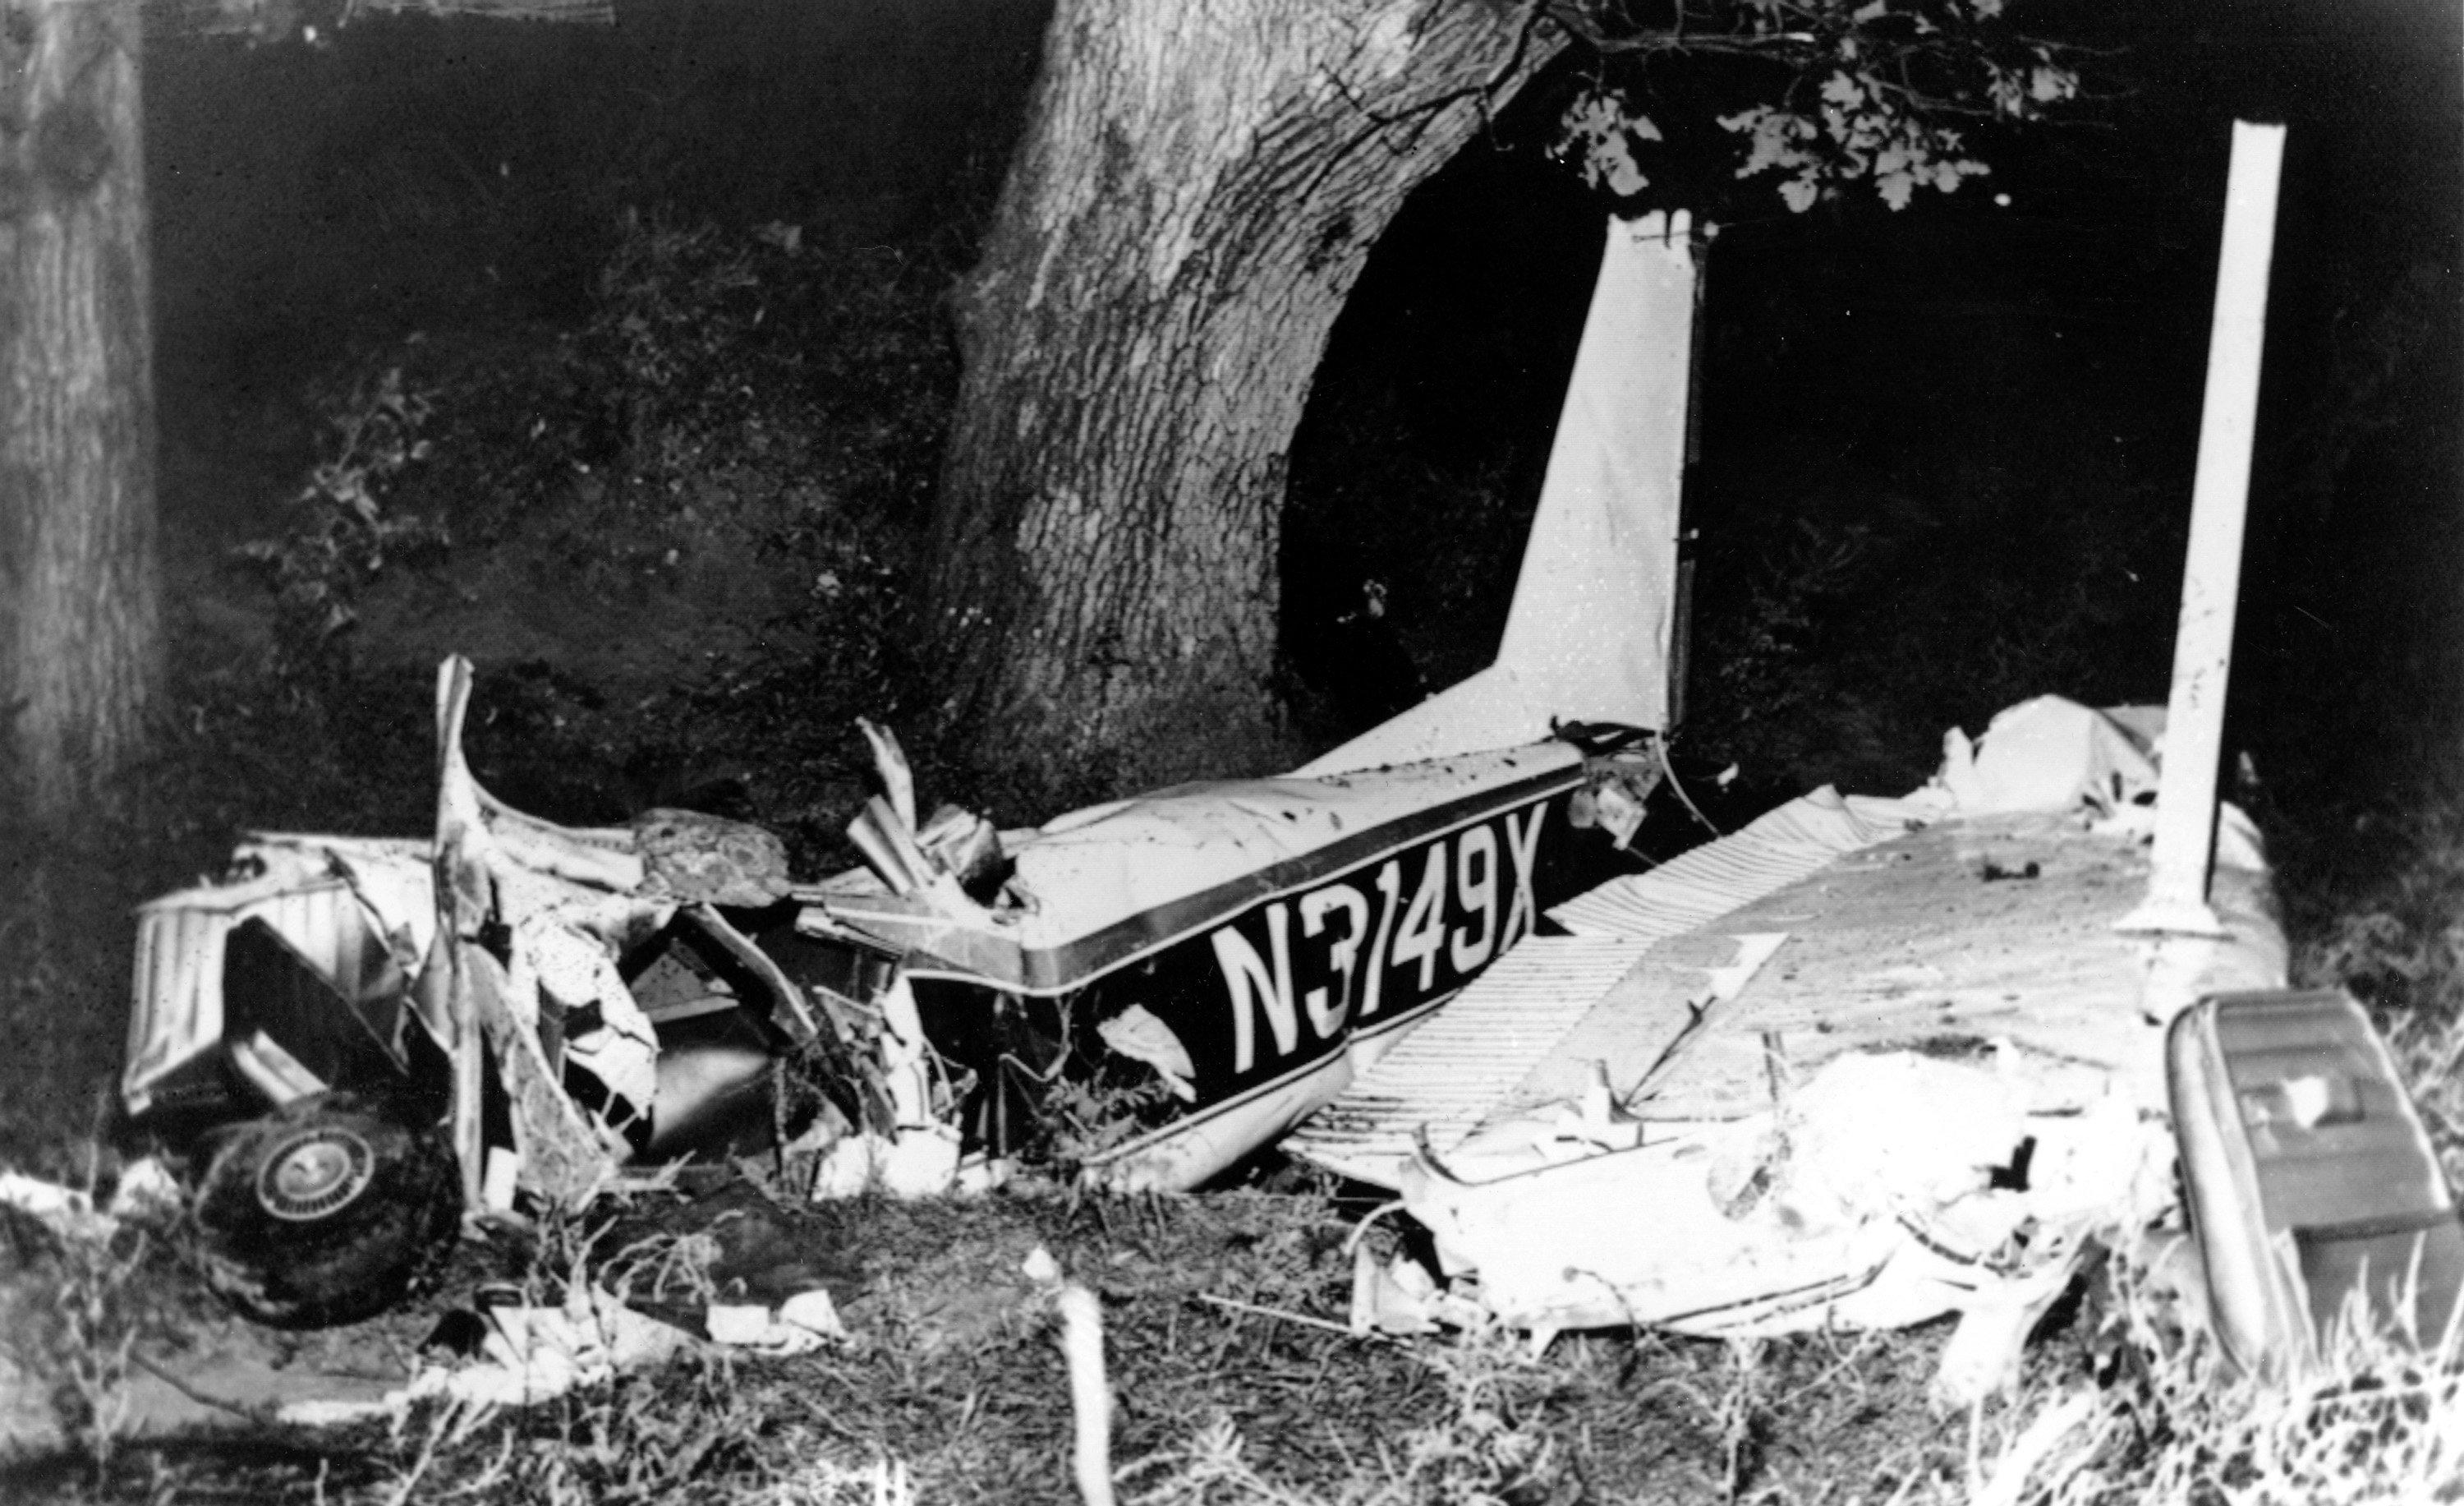 Famous Musicians Who Died in Small Plane Crashes